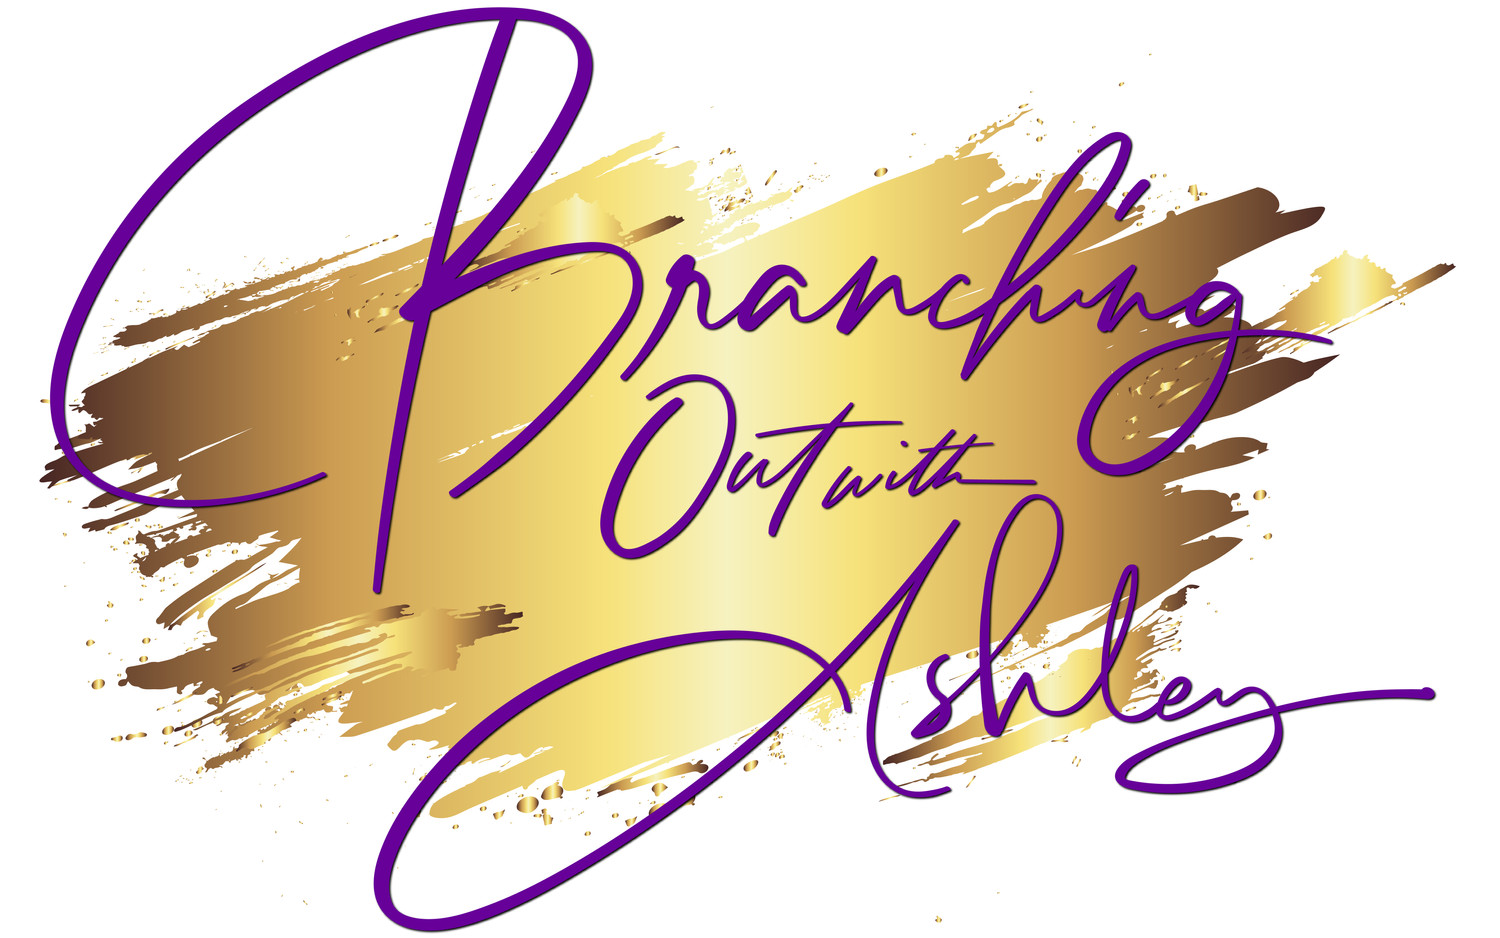 Branching Out with Ashley Full Logo Smal